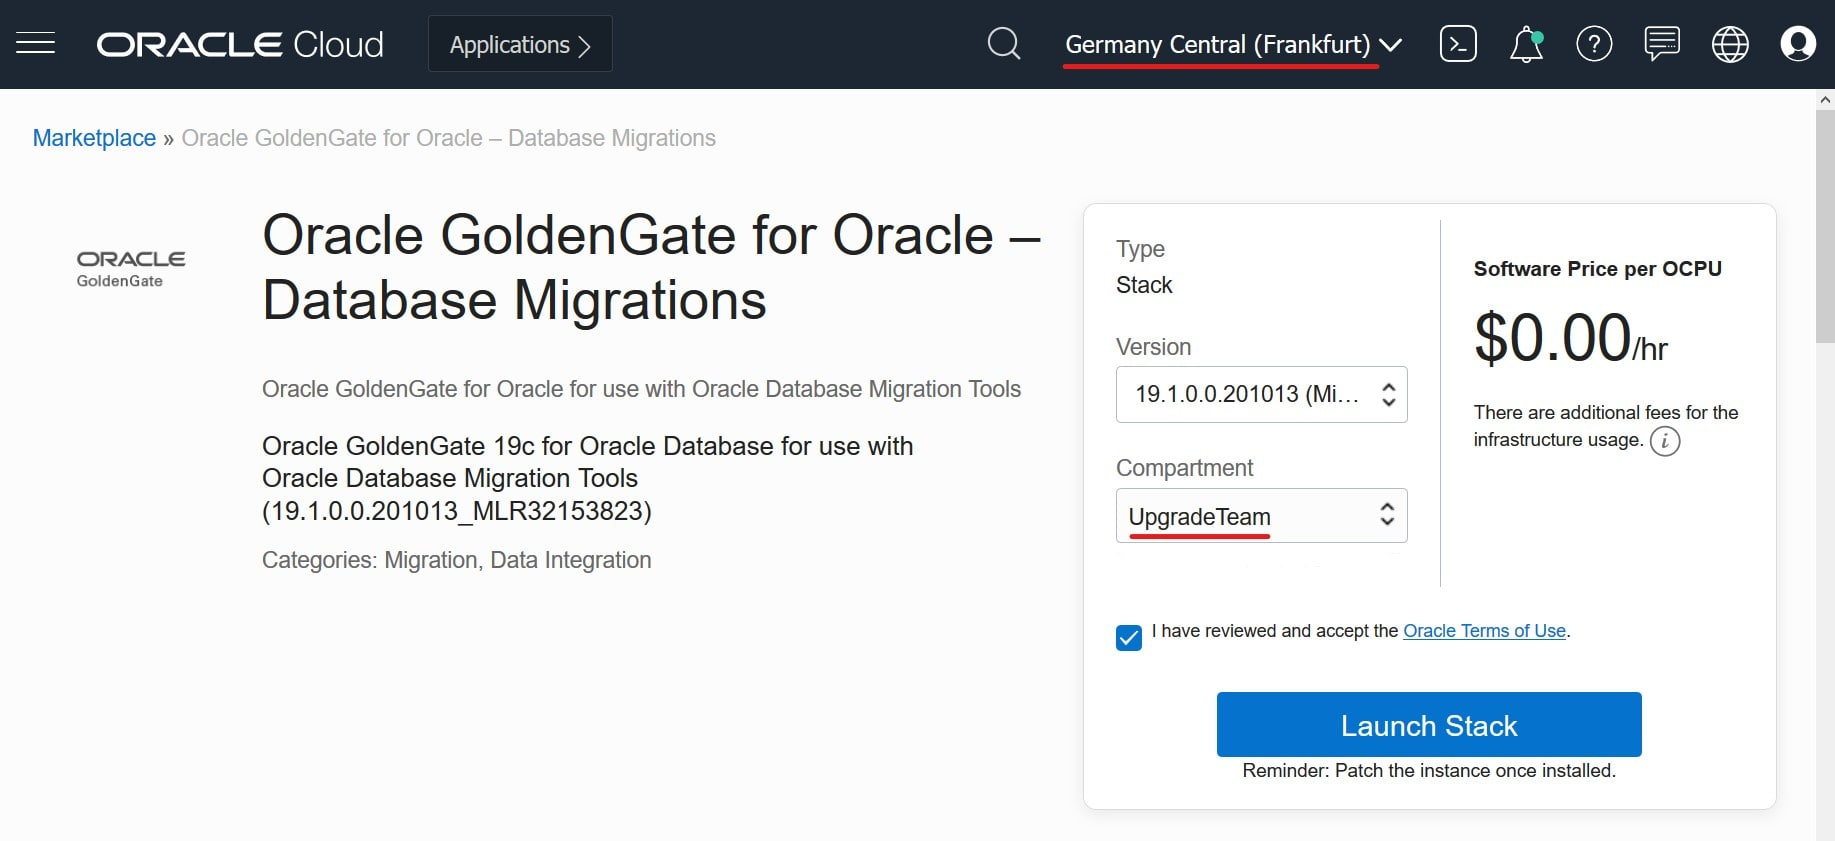 Launching an Oracle GoldenGate stack using OCI Marketplace